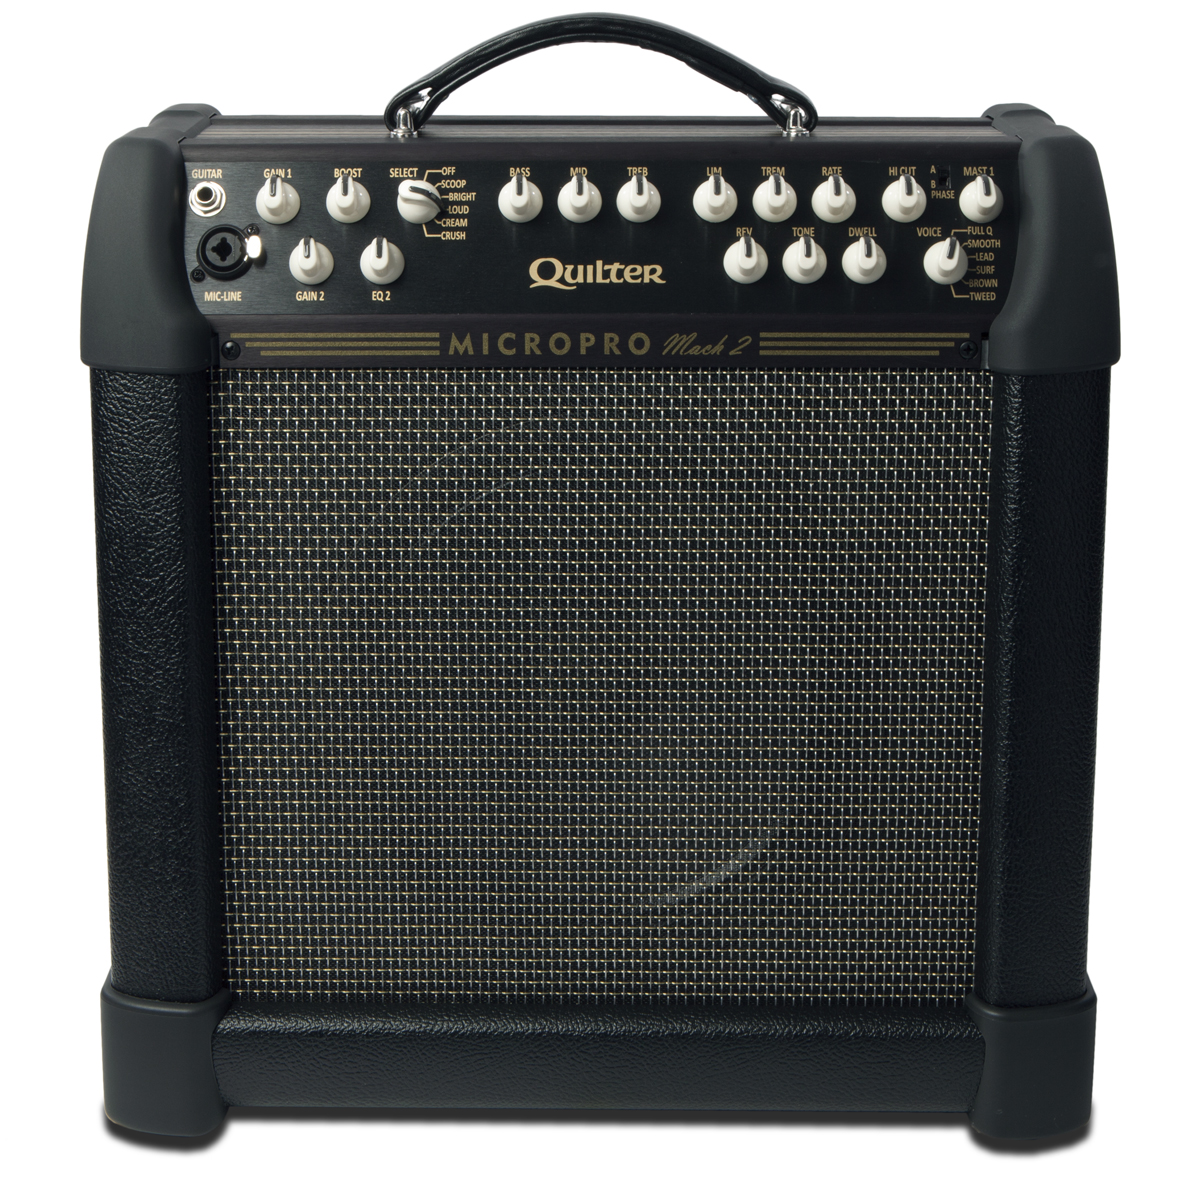 Quilter MicroPro Mach 2 10 inch Combo